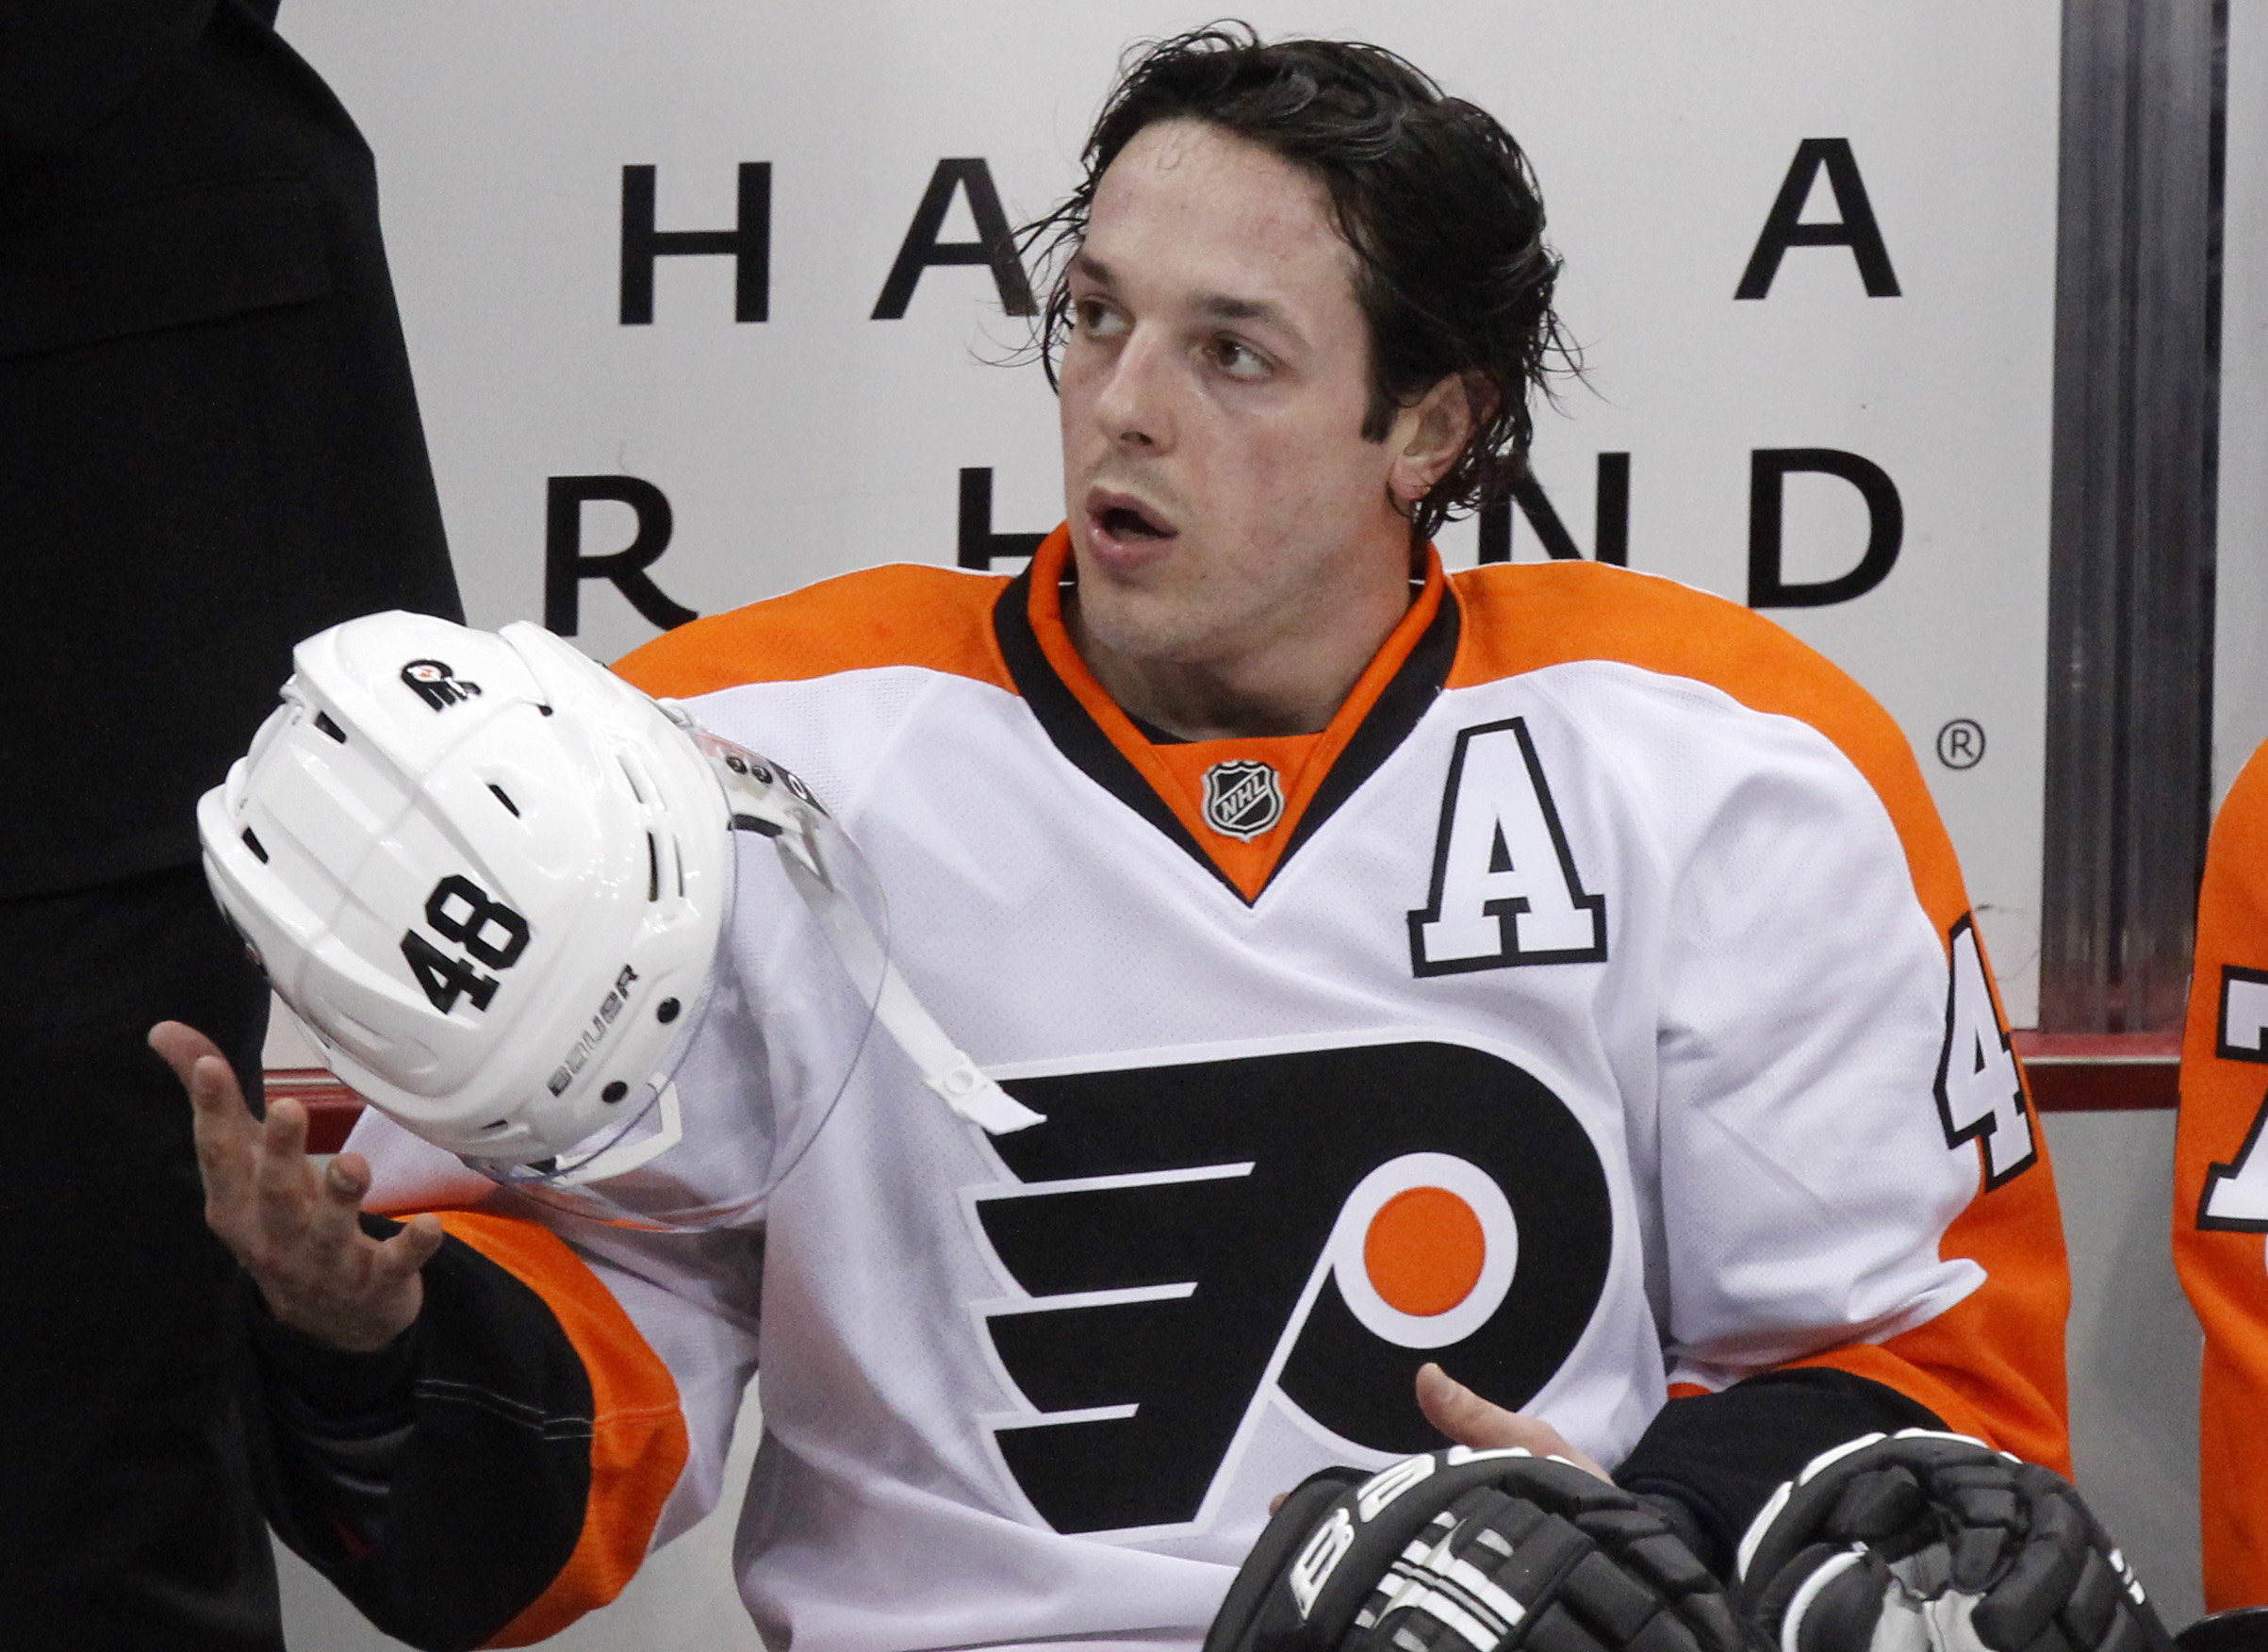 The UFA market has been supplemented by bought-out veterans such as Daniel Briere. (AP)